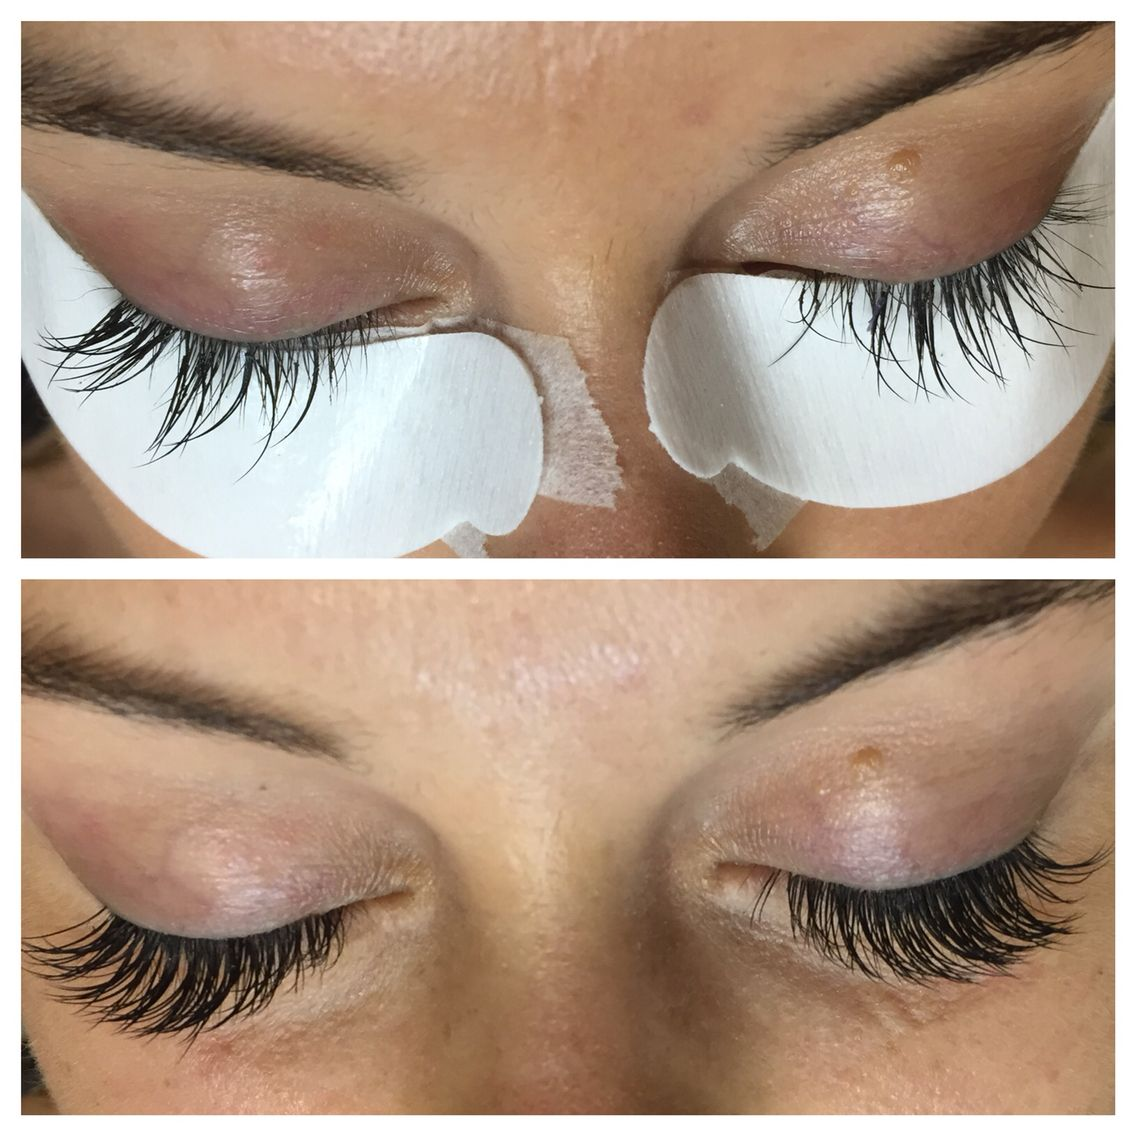 Lash Extension Correction Before And After Got A Bad Fill In Or